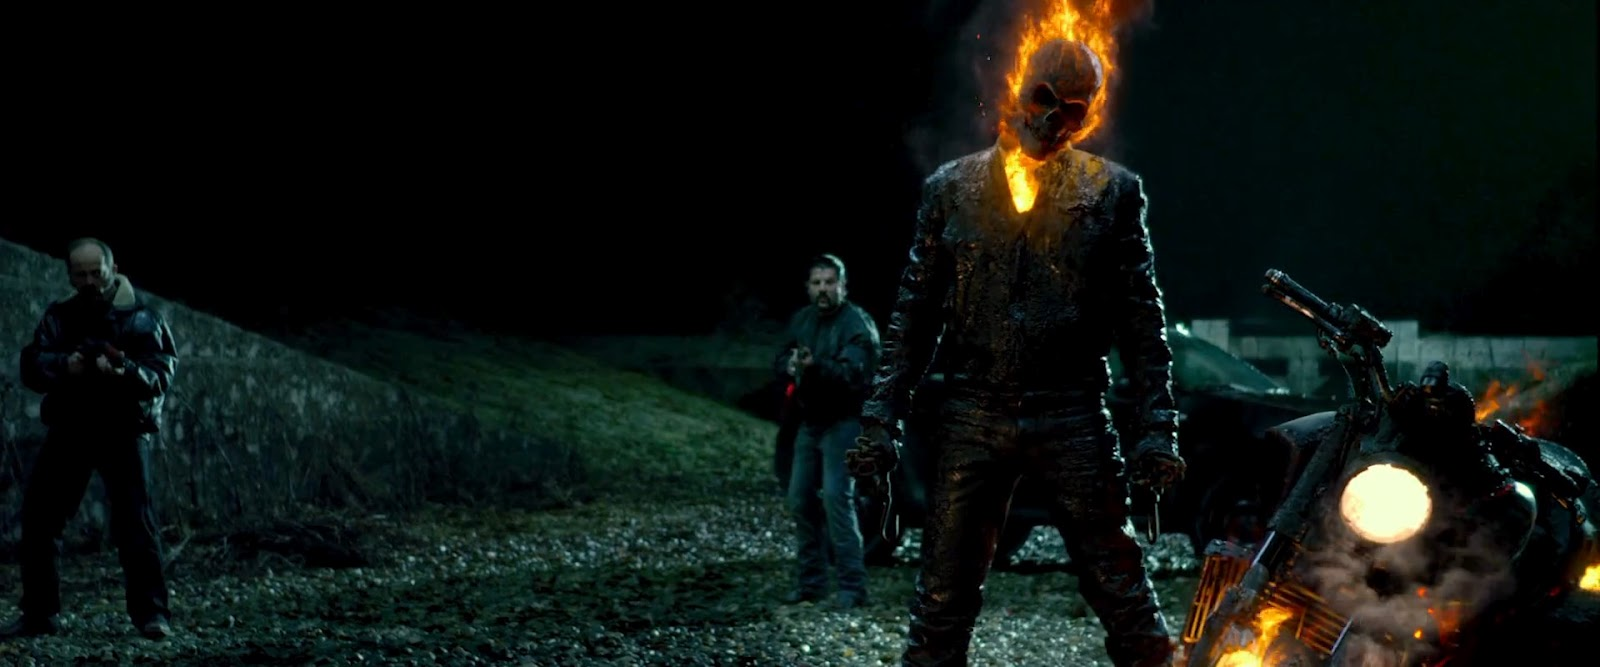 Ghost Rider Part 1 Dual Audio Sdmoviespoint in - fasrxo